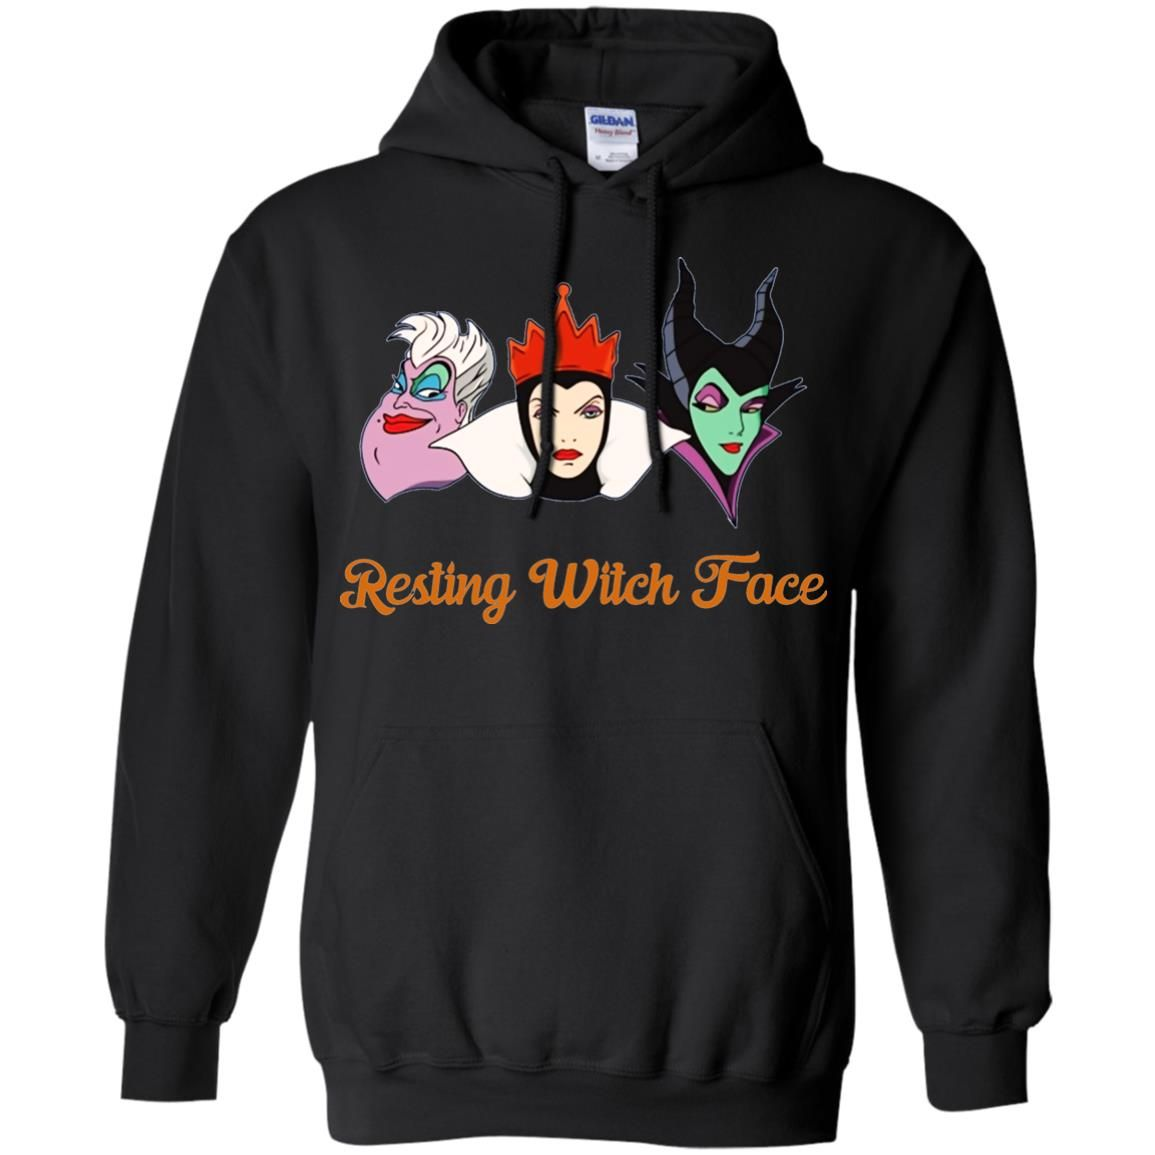 image 1961 - Resting Witch Face shirt for Halloween: Ursula, Maleficent, Evil Queen